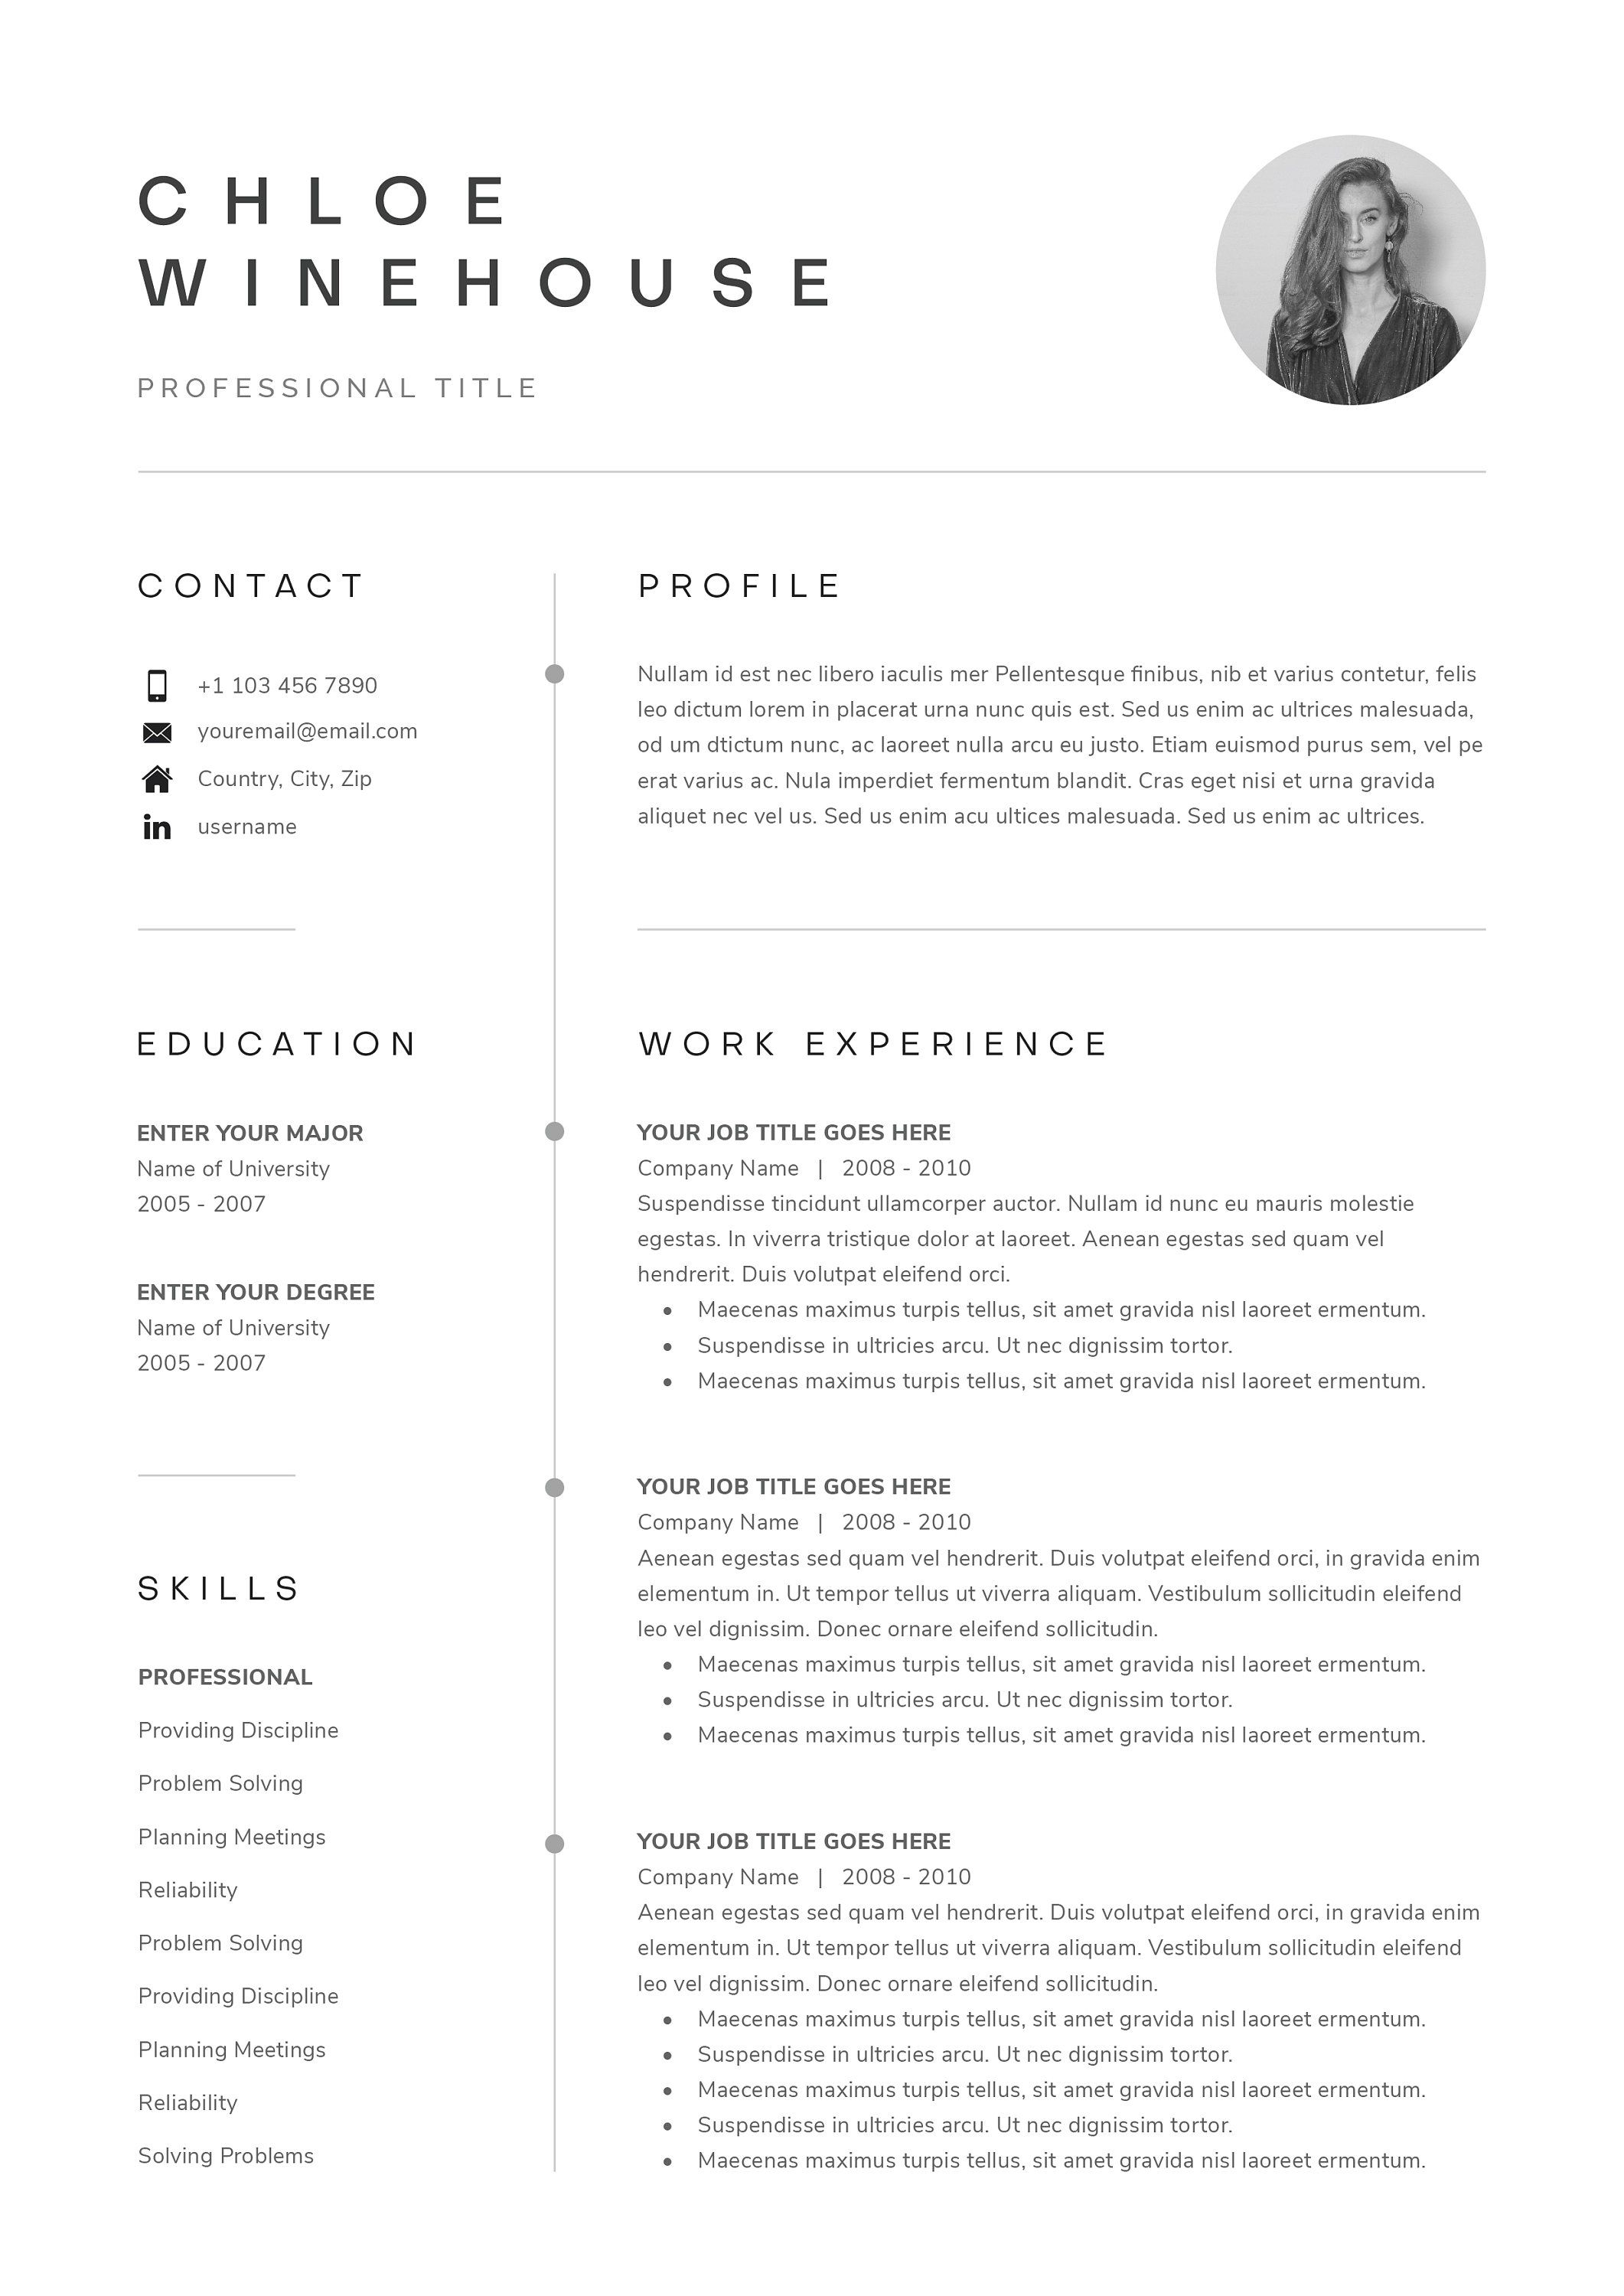 Resume Template Resume Template Word Resume With Picture Cv Cv Template Resume With Cover Letter Professional Resume Template Resume Resume Cover Letter Template Resume Template Resume Template Word